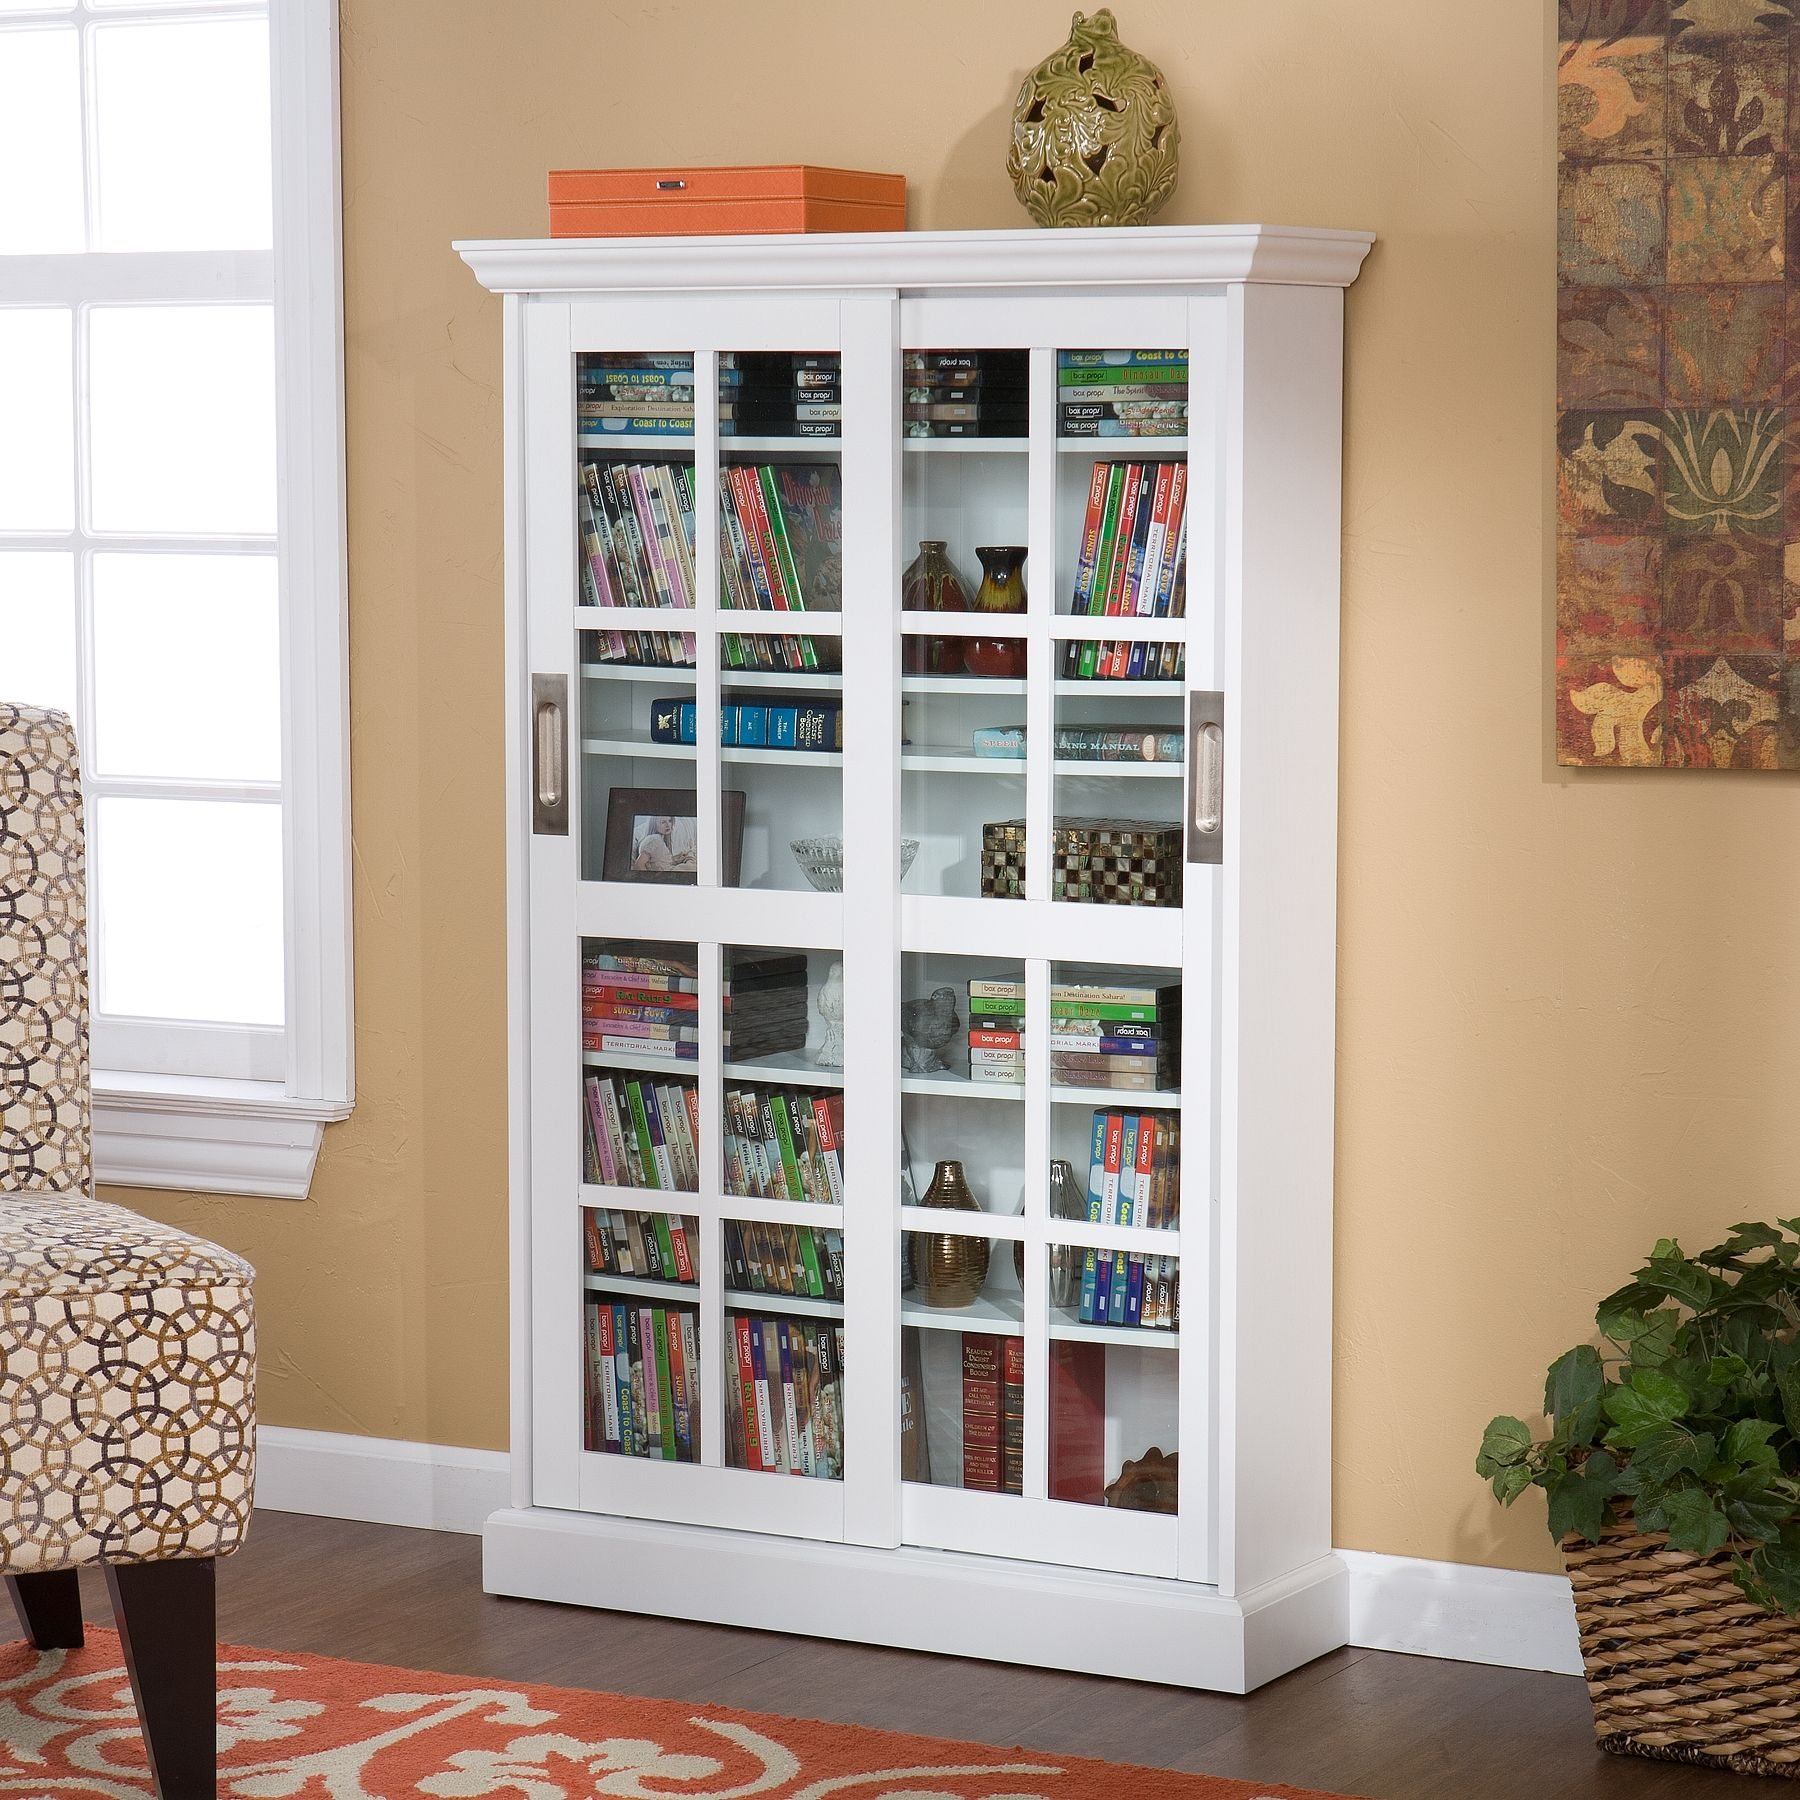 Dvd Storage Cabinet With Sliding Glass Doors Httpfranzdondi